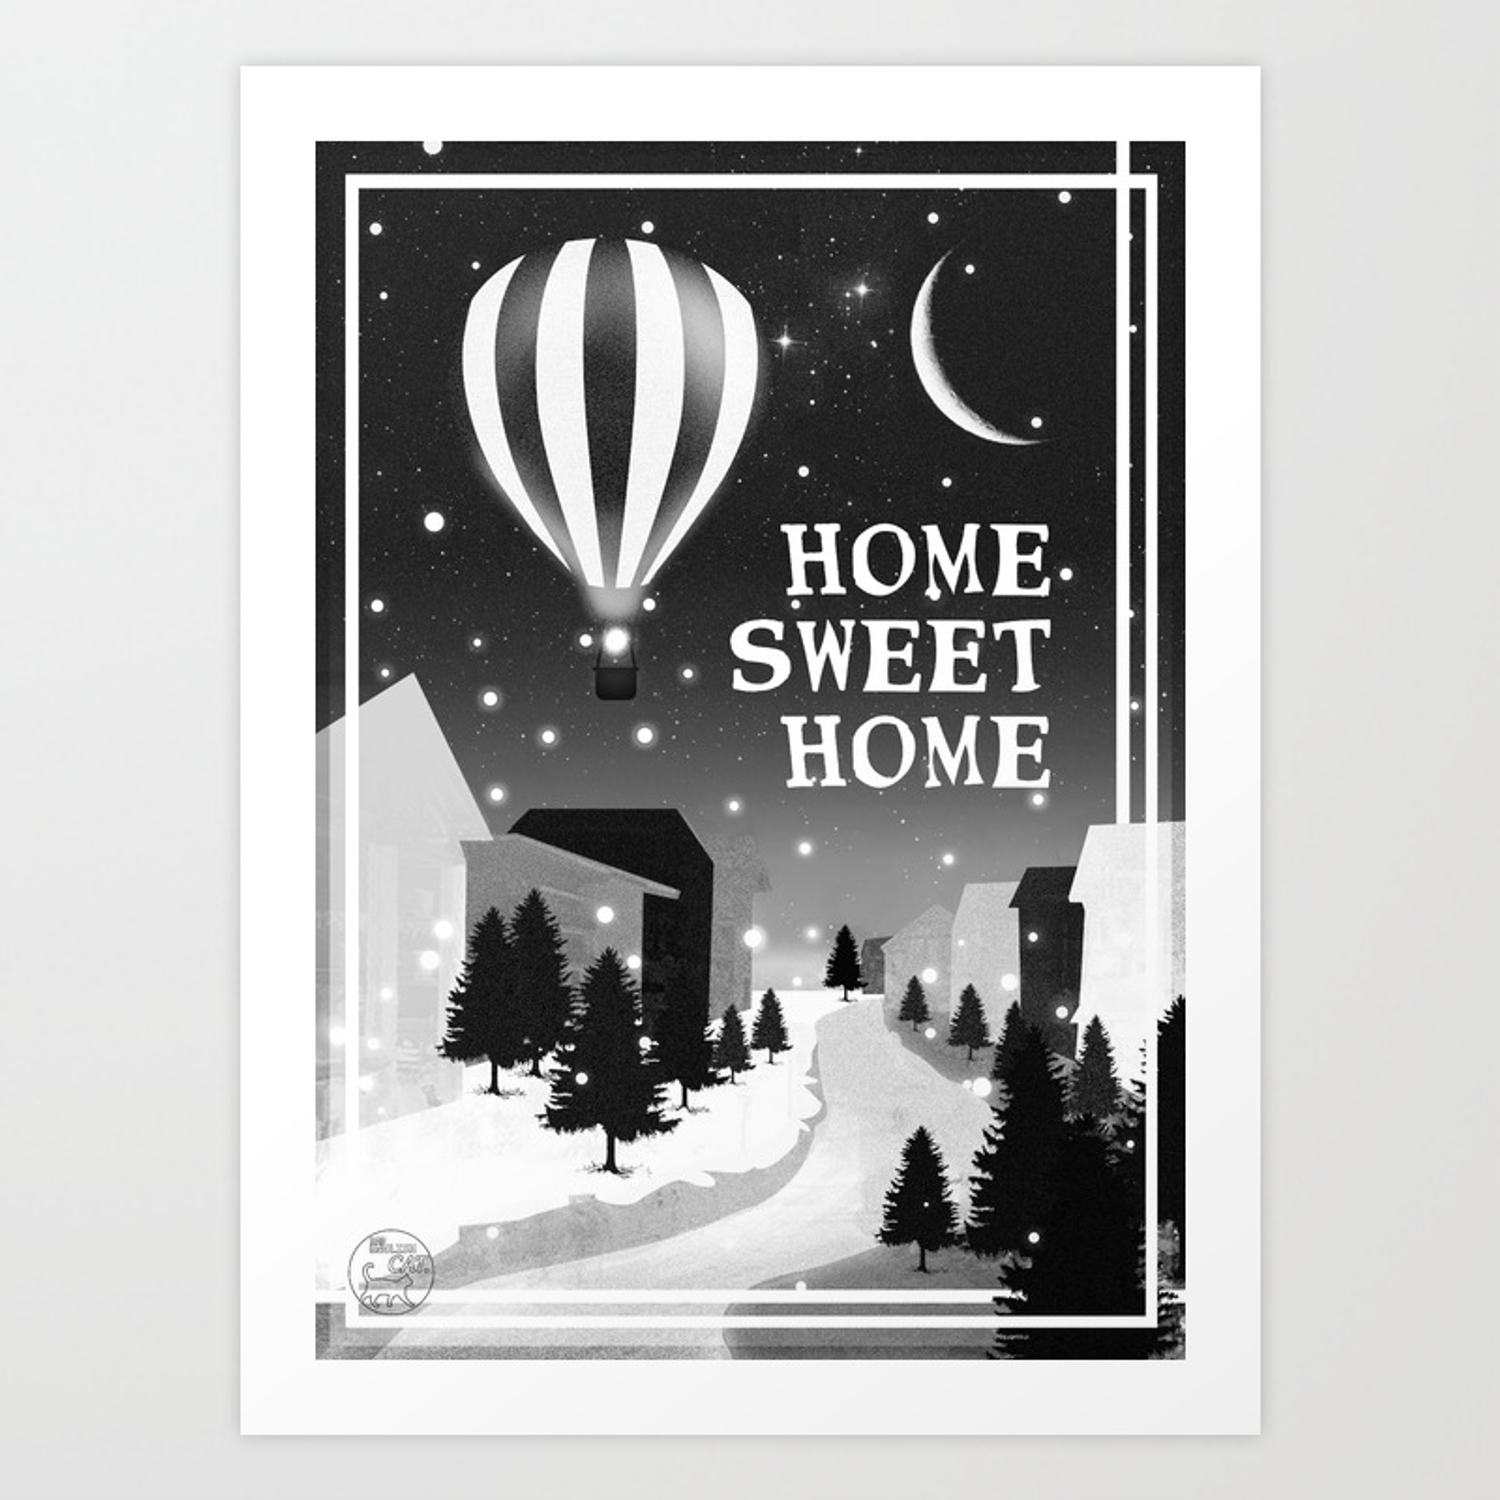 Hot Air Balloon Home Sweet Snowy Little Town Night Staroon Decor Christmas Spirit Art Print